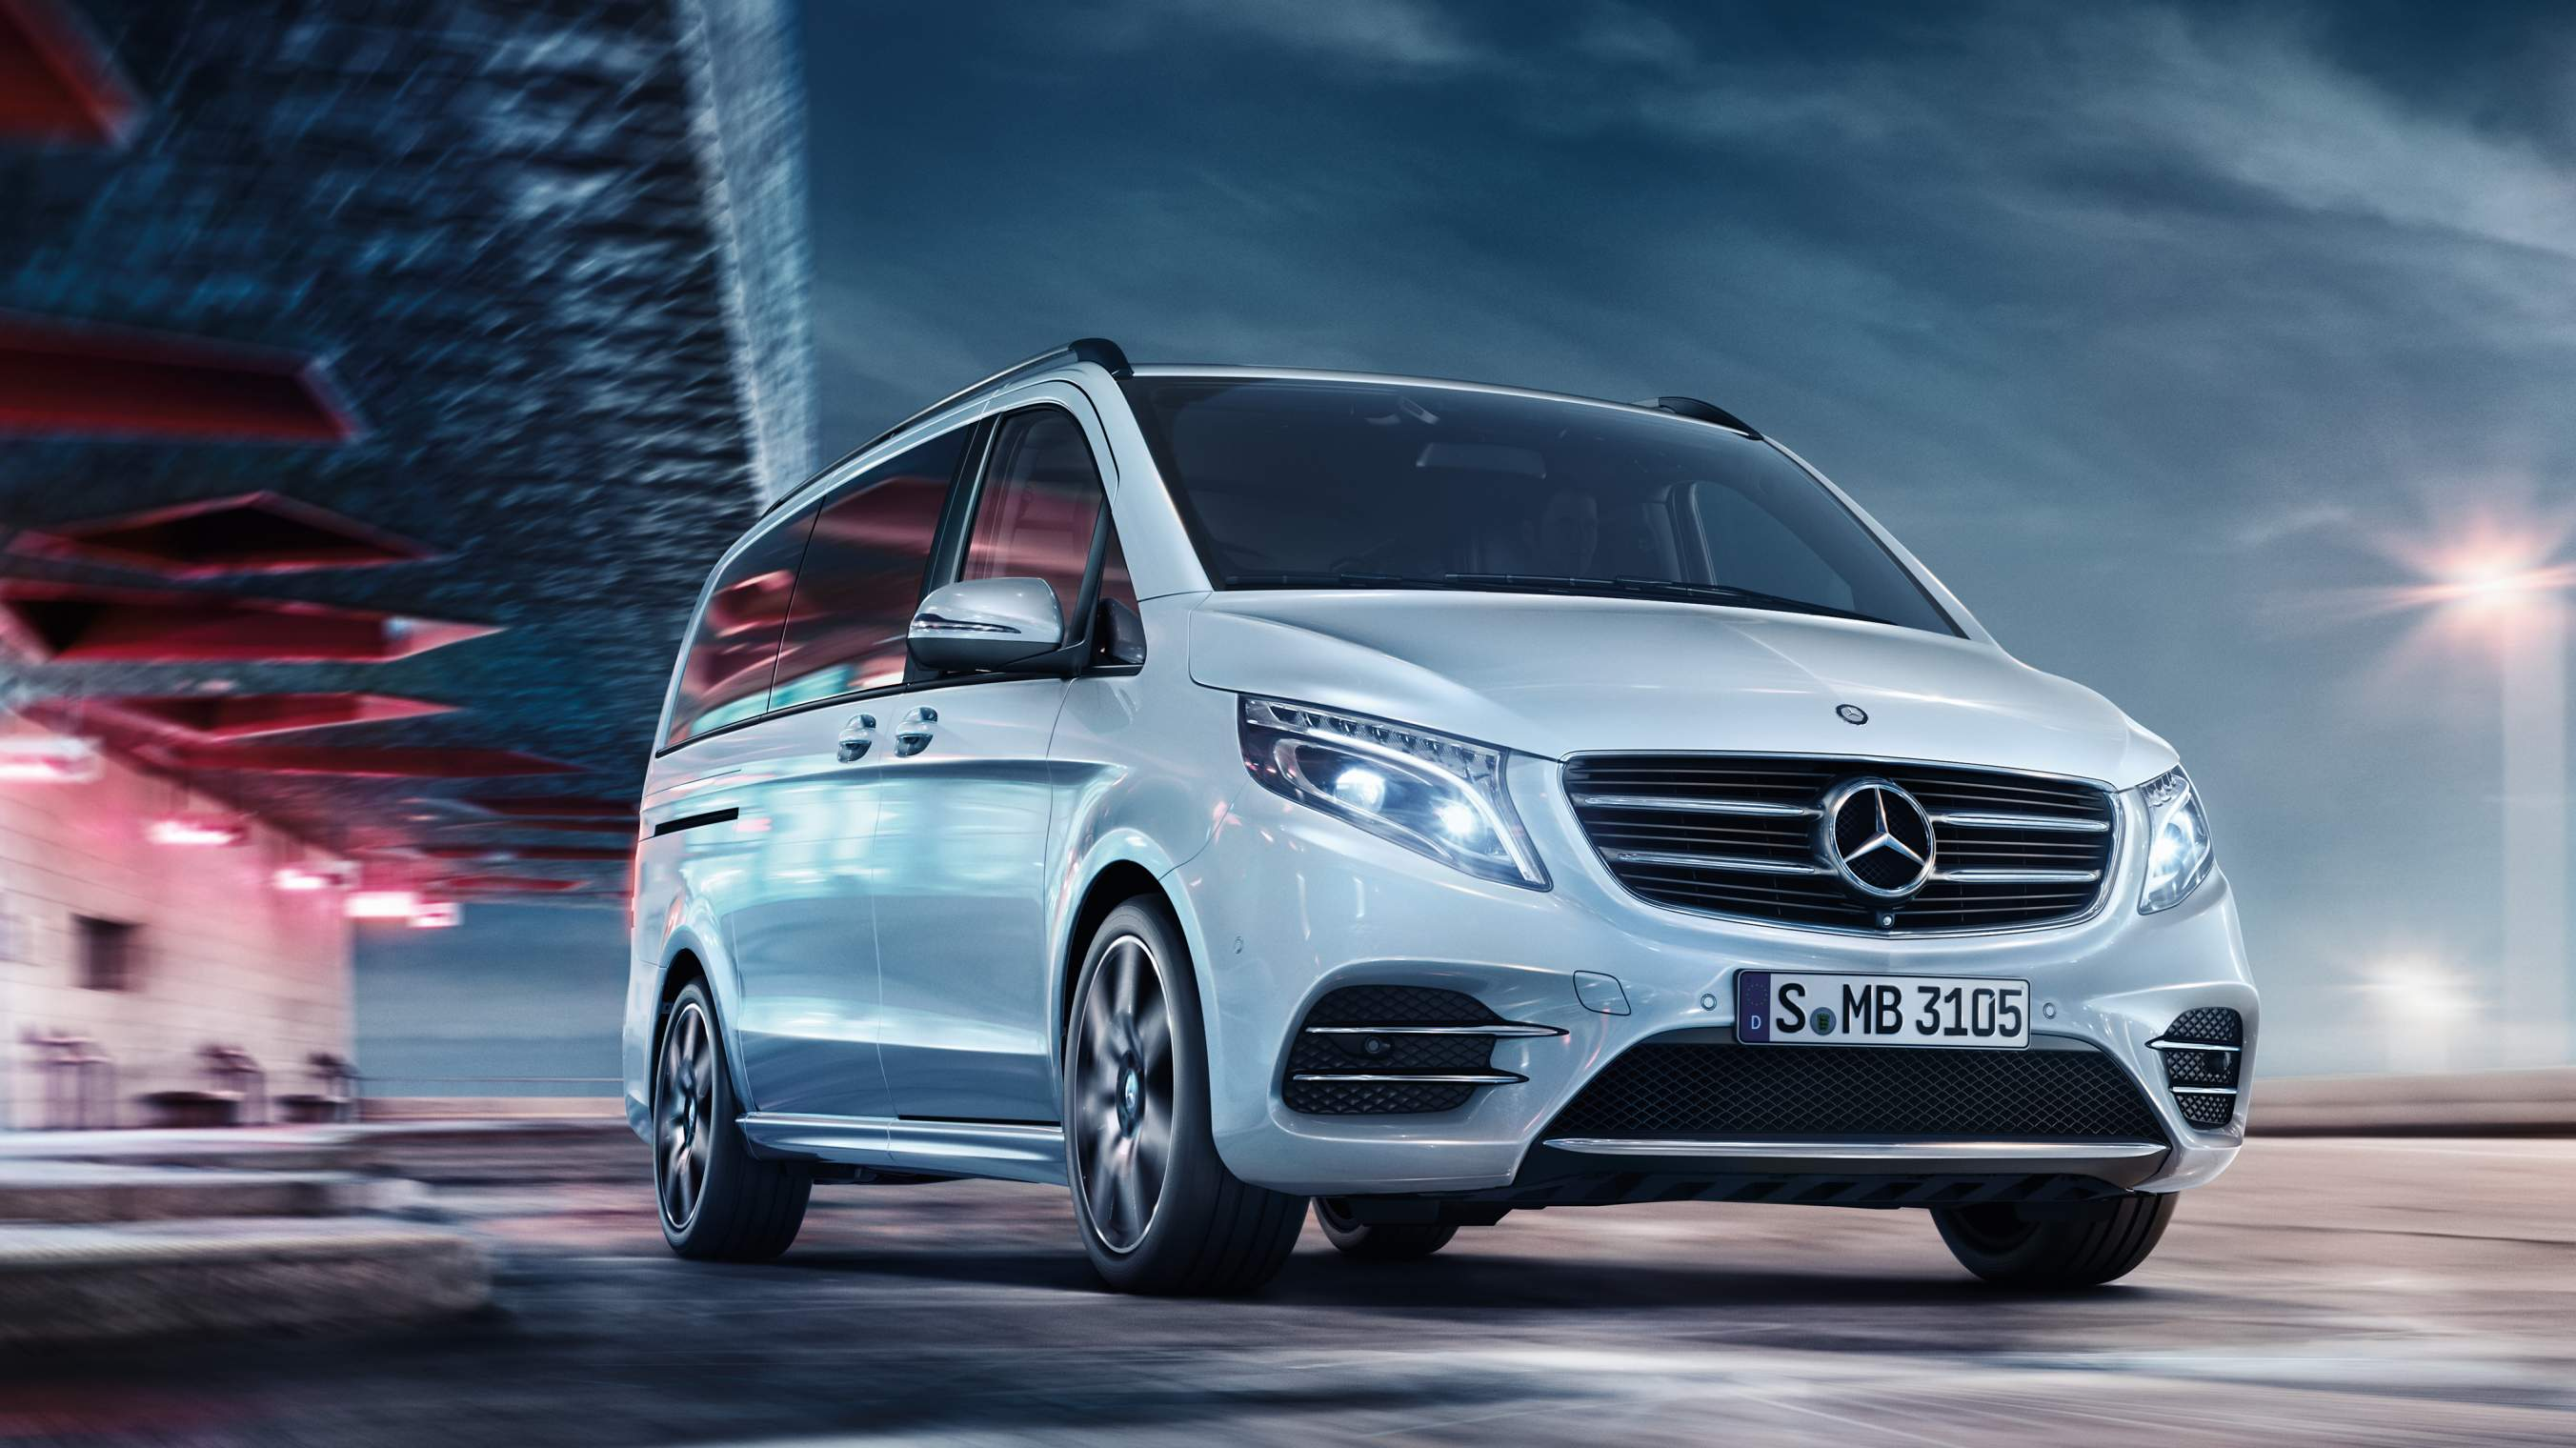 Mercedes-Benz Intelligent Drive в новом автомобиле Mercedes-Benz V-Class